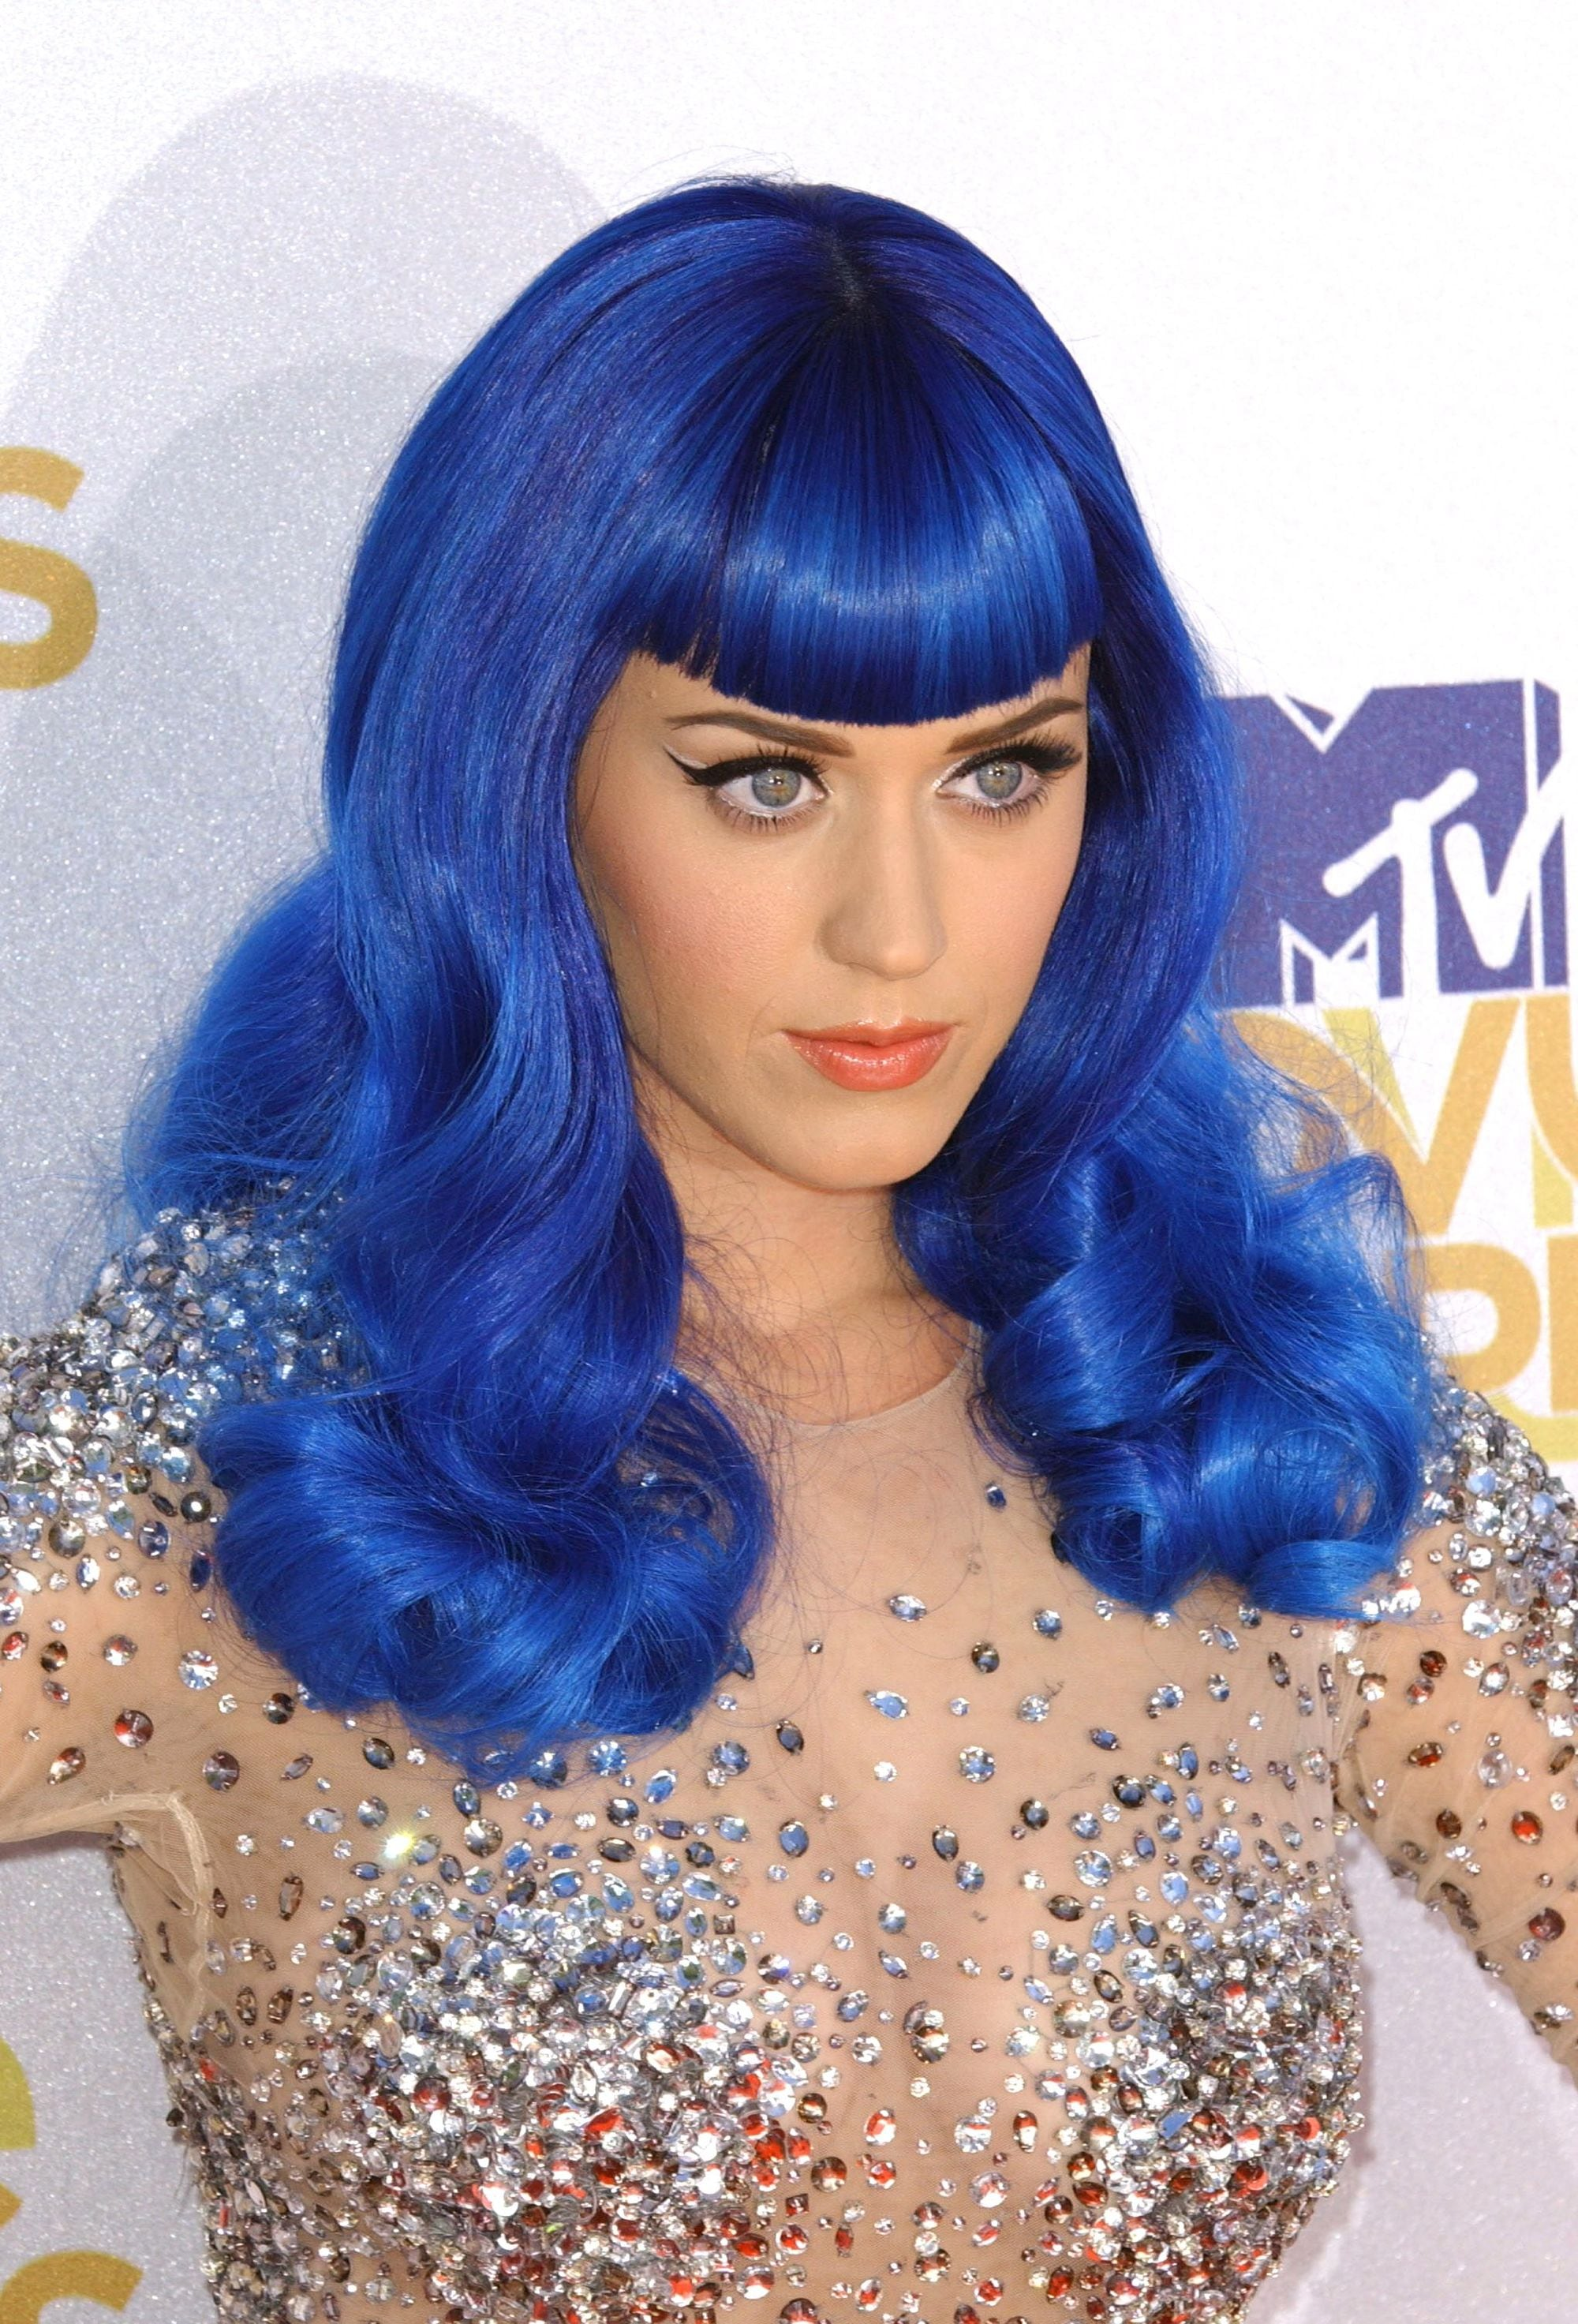 Katy Perry electric blue medium length hair with curved full bangs